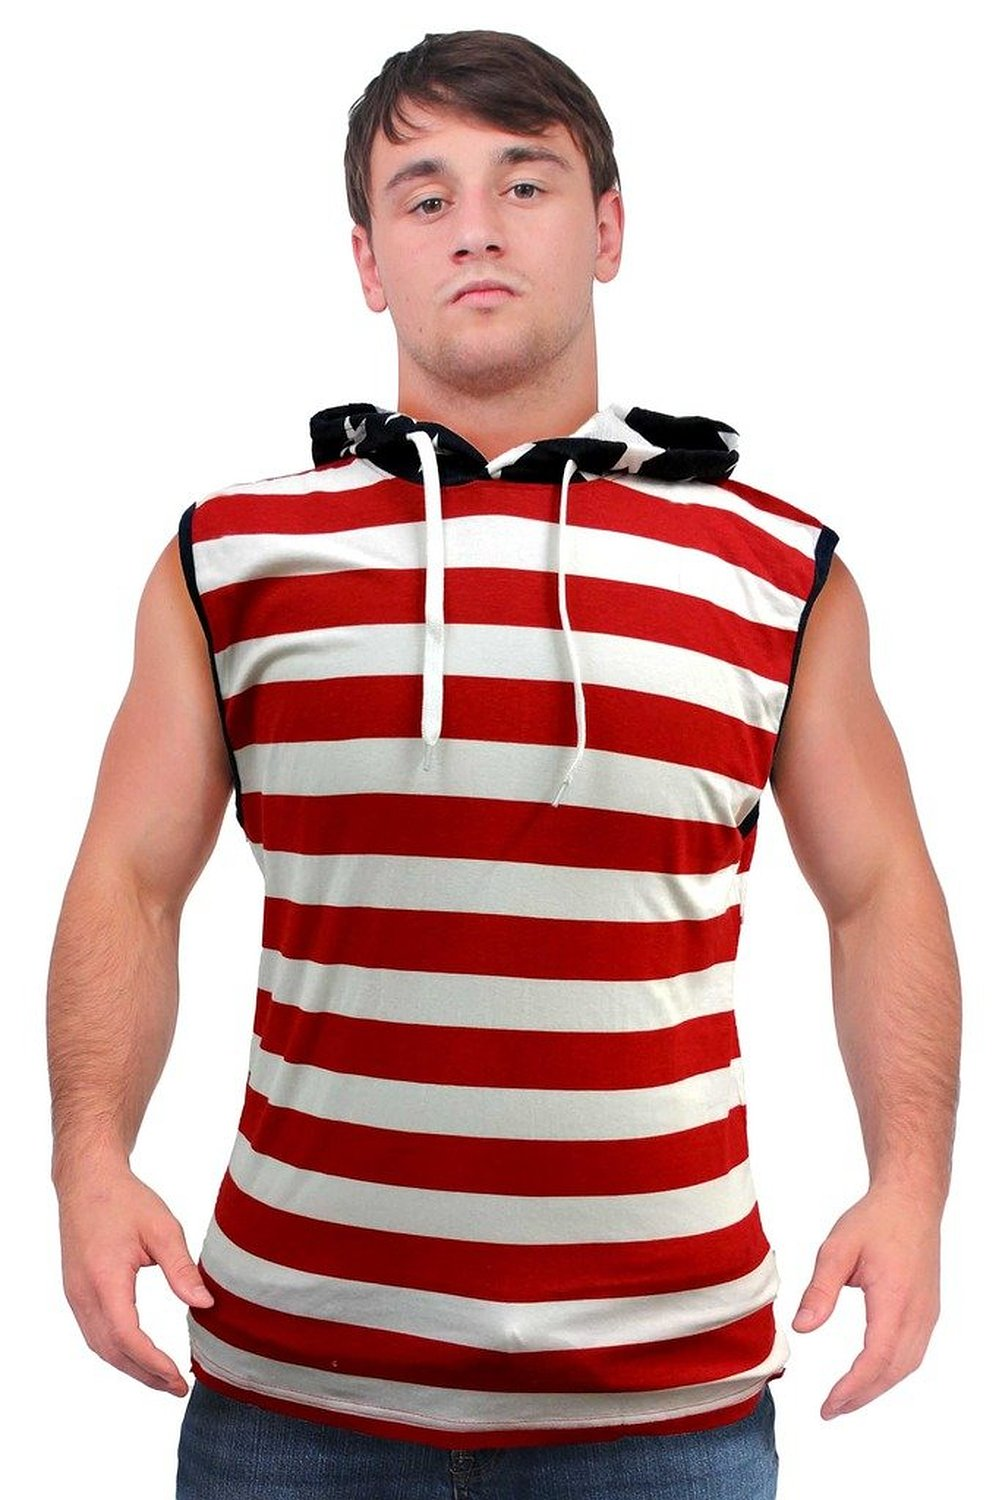 Our men's American Flag clothing for men also includes classic sweaters in thick, rich knit colors. The American flag sweater for men has stars above and stripes below, while the USA men's sweater gives you a bold, authentic look in red, white, and blue.